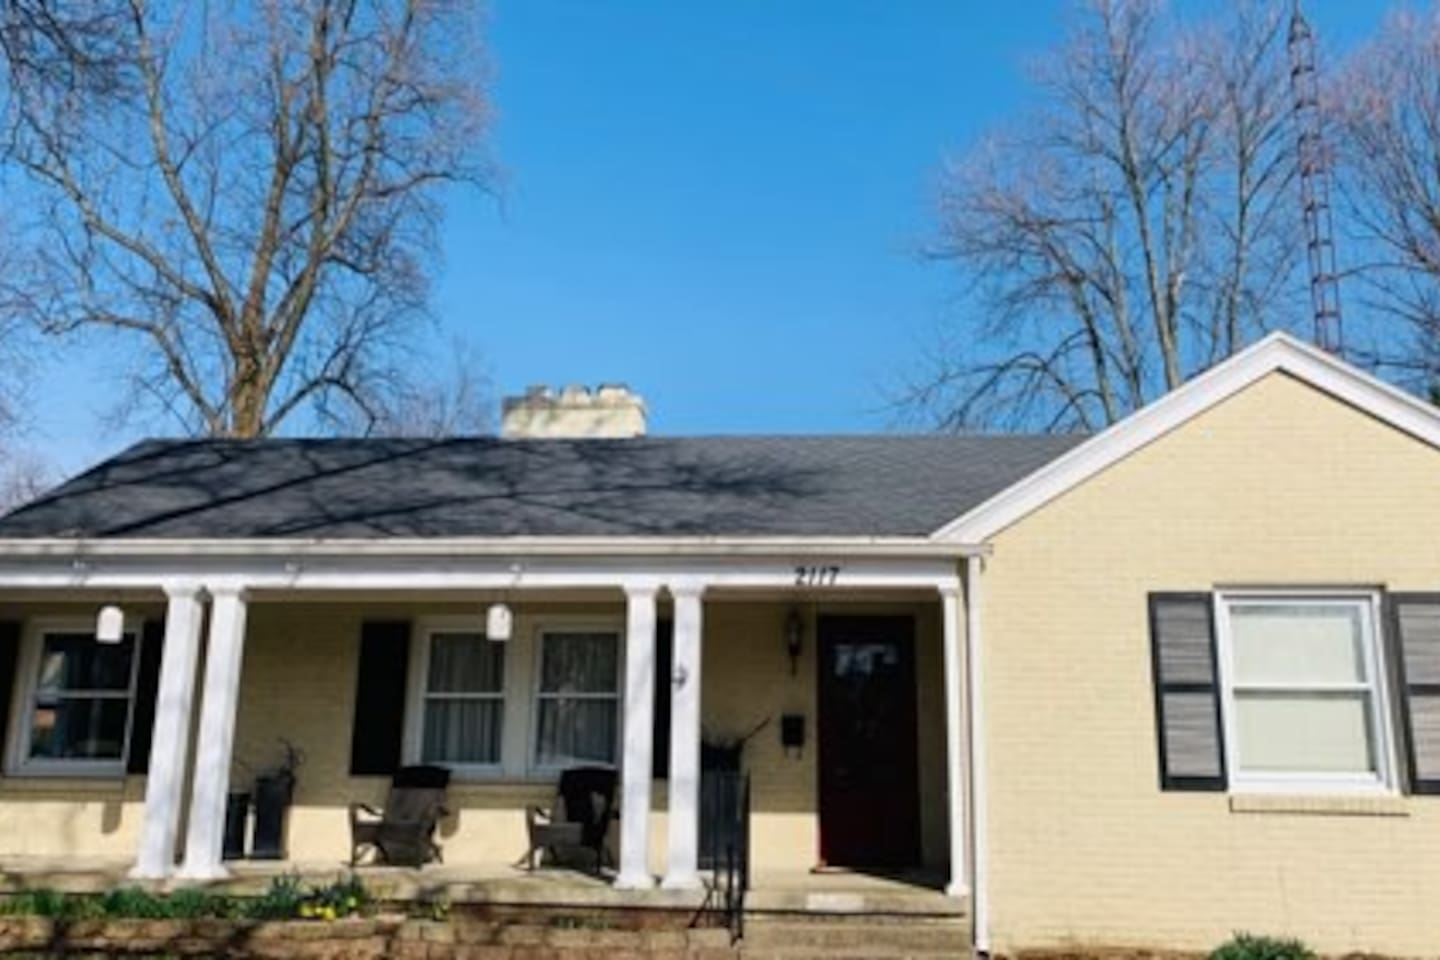 Nice brick home with mature trees, centrally located in Owensboro. Very nice neighborhood.